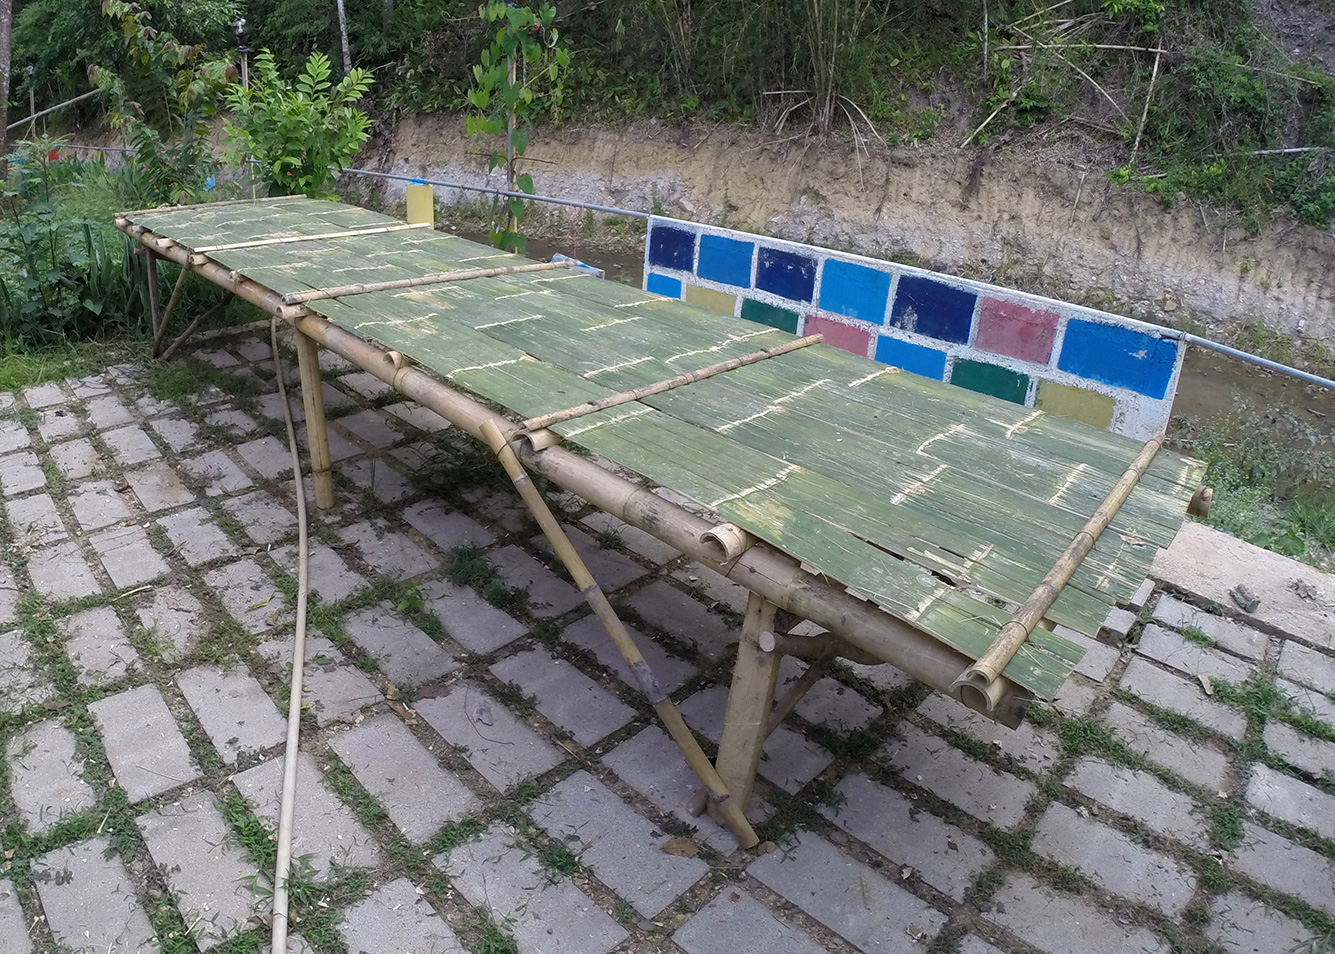 A table made from bamboo for the disinfection and material studies